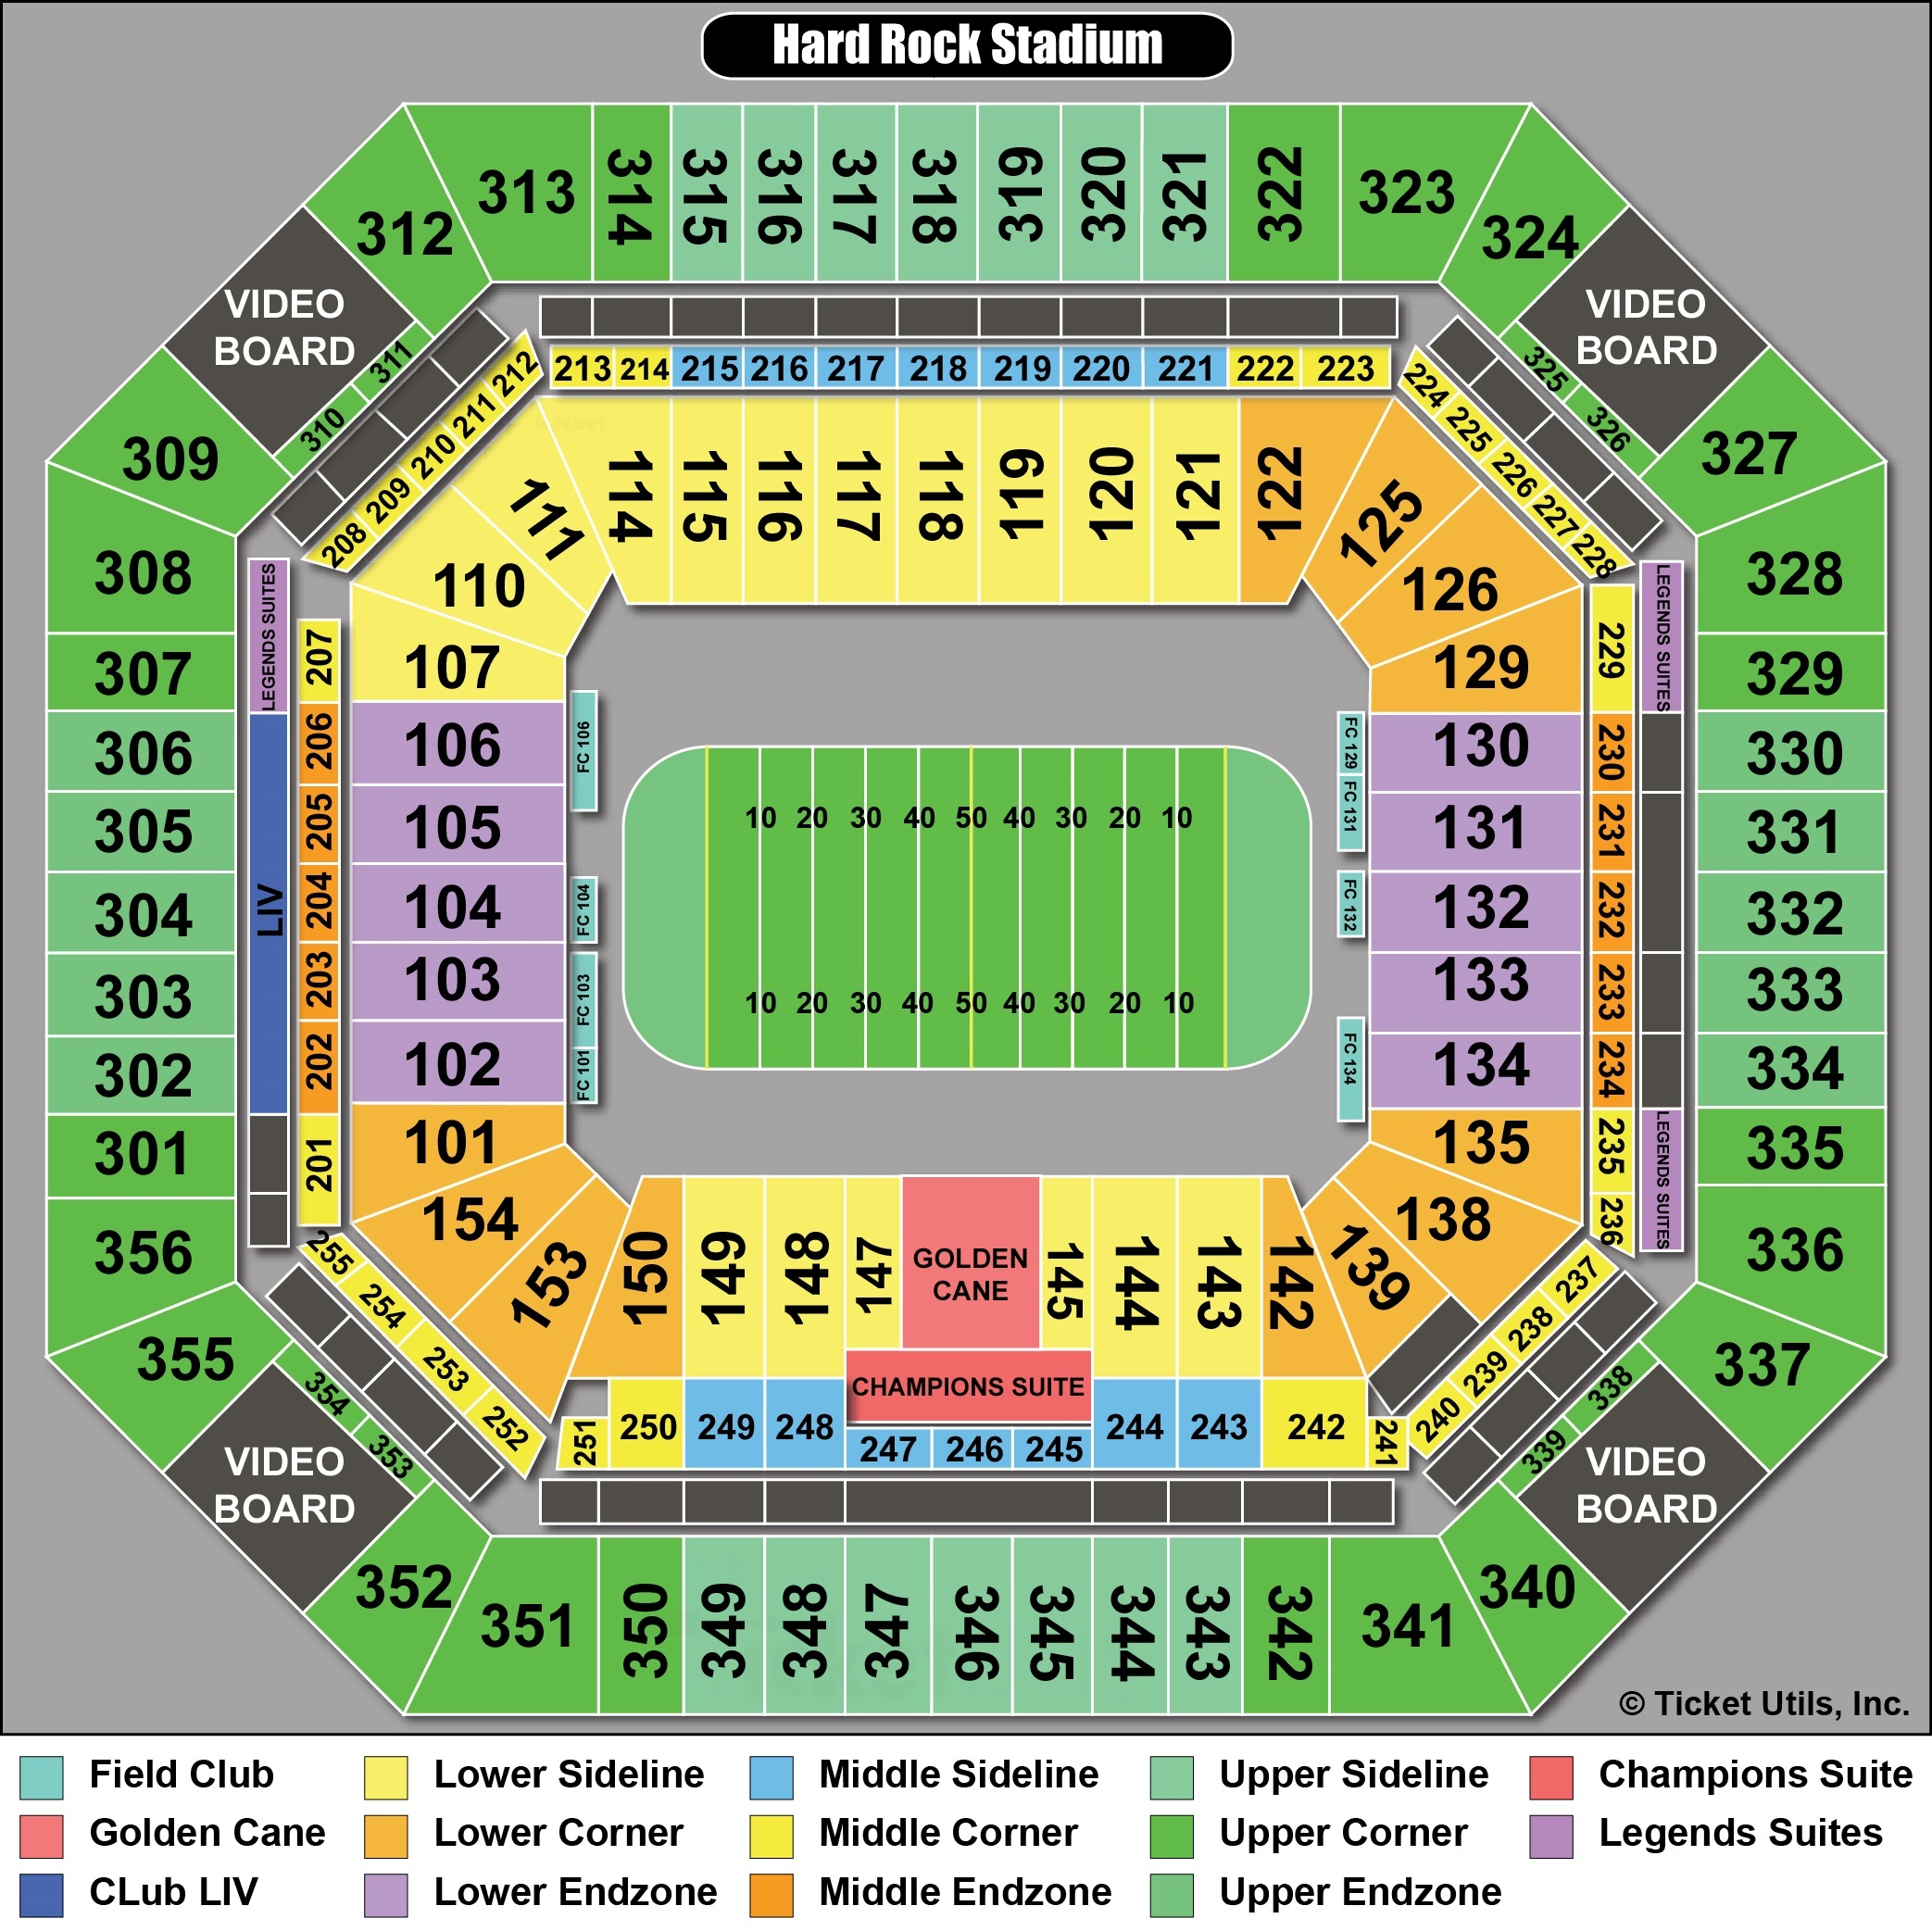 hard rock stadium - miami dolphins tickets